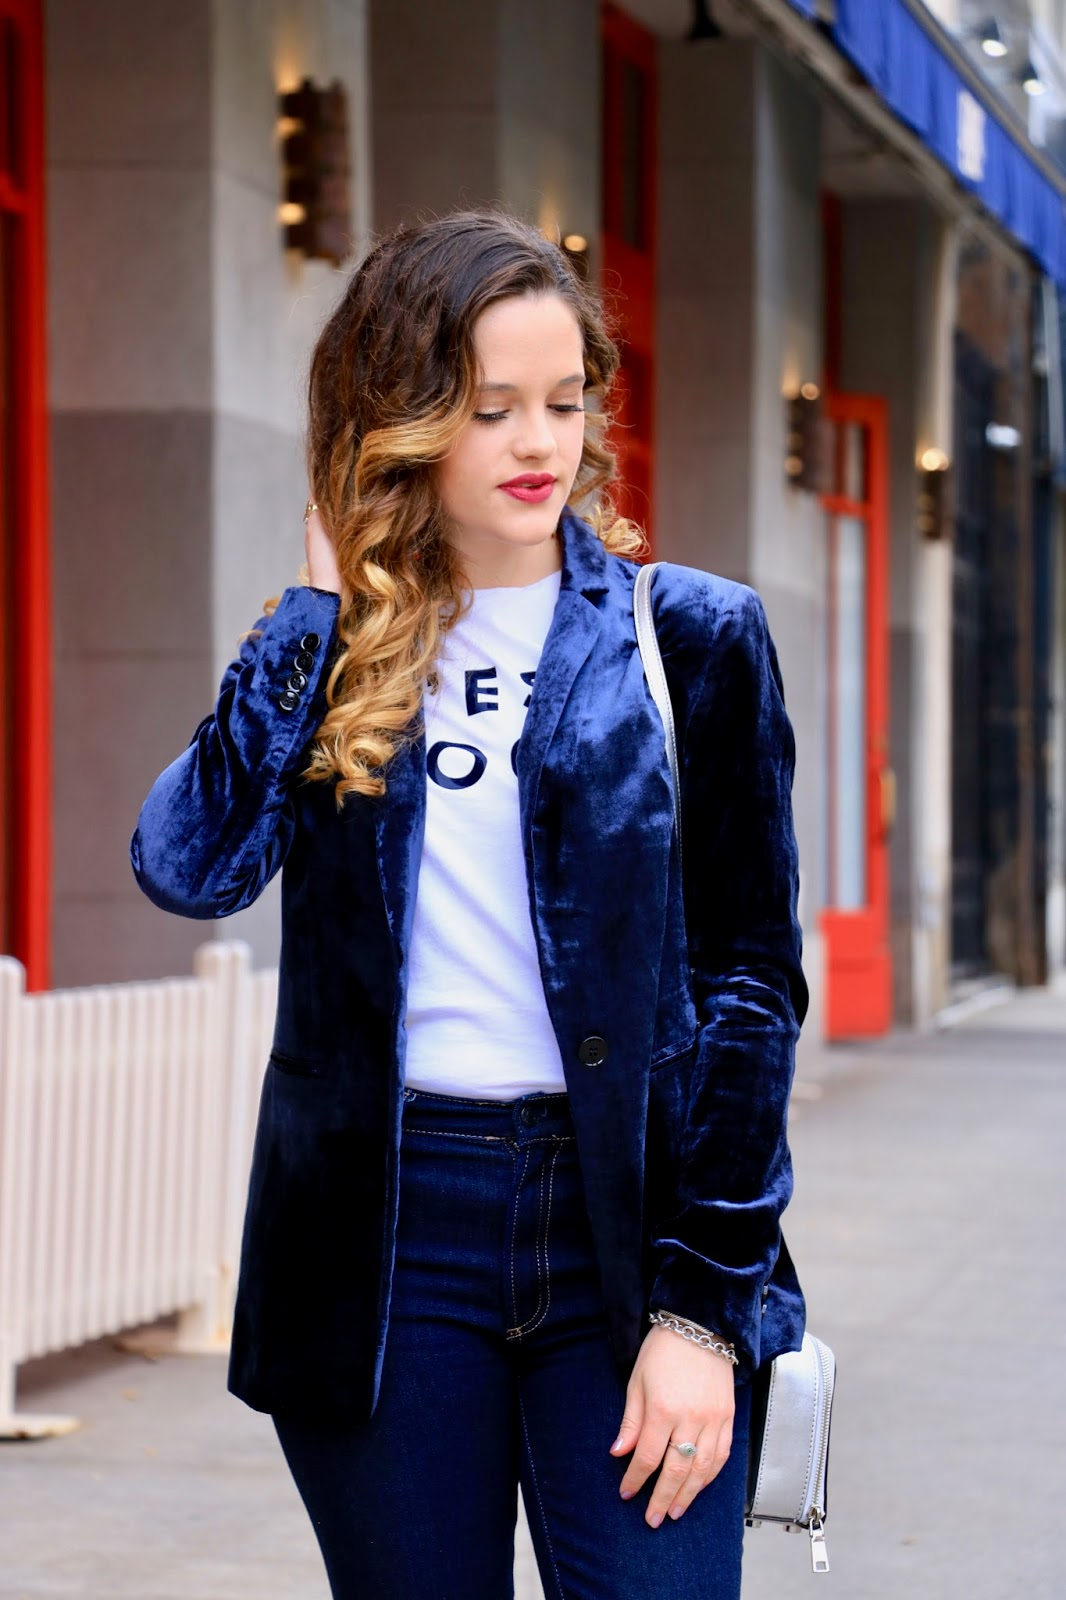 Nyc fashion blogger Kathleen Harper showing how to wear a velvet blazer